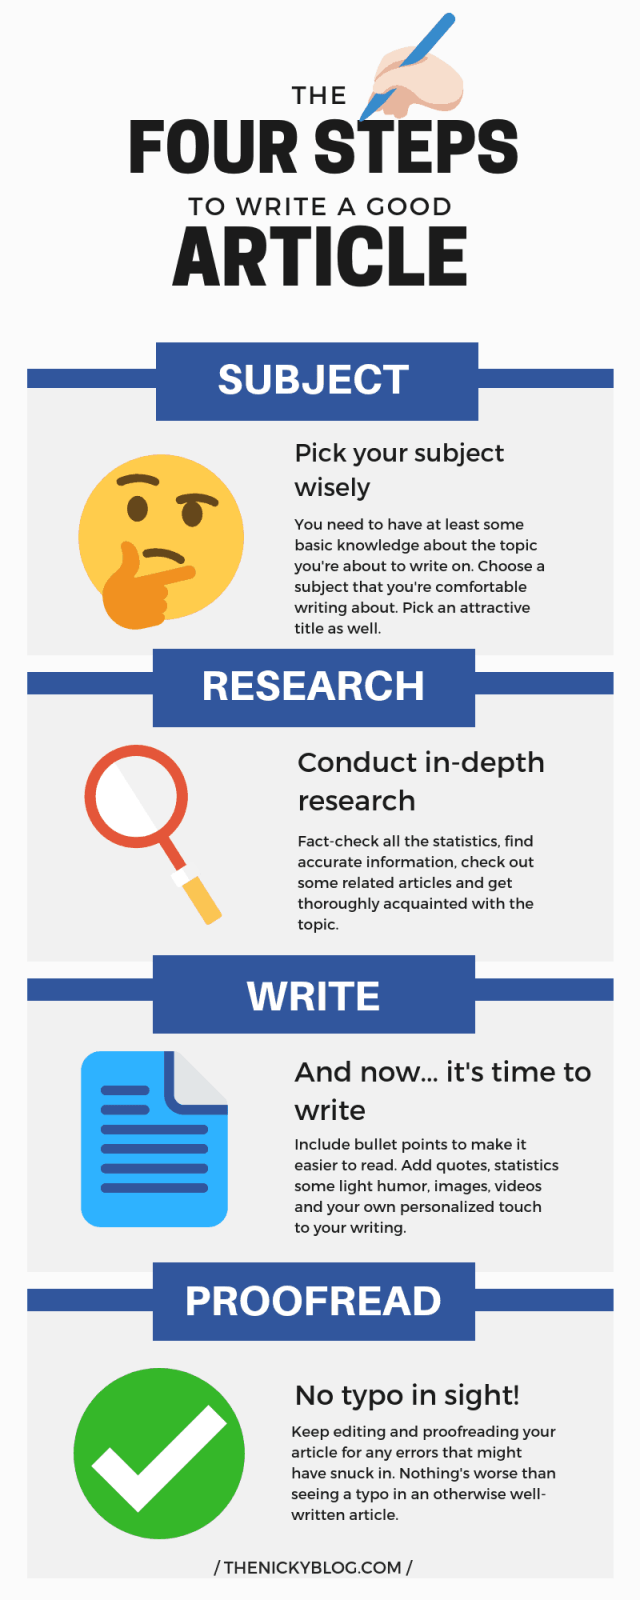 12 Simple Steps To Write A Good Article [INFOGRAPHIC] - The Nicky Blog